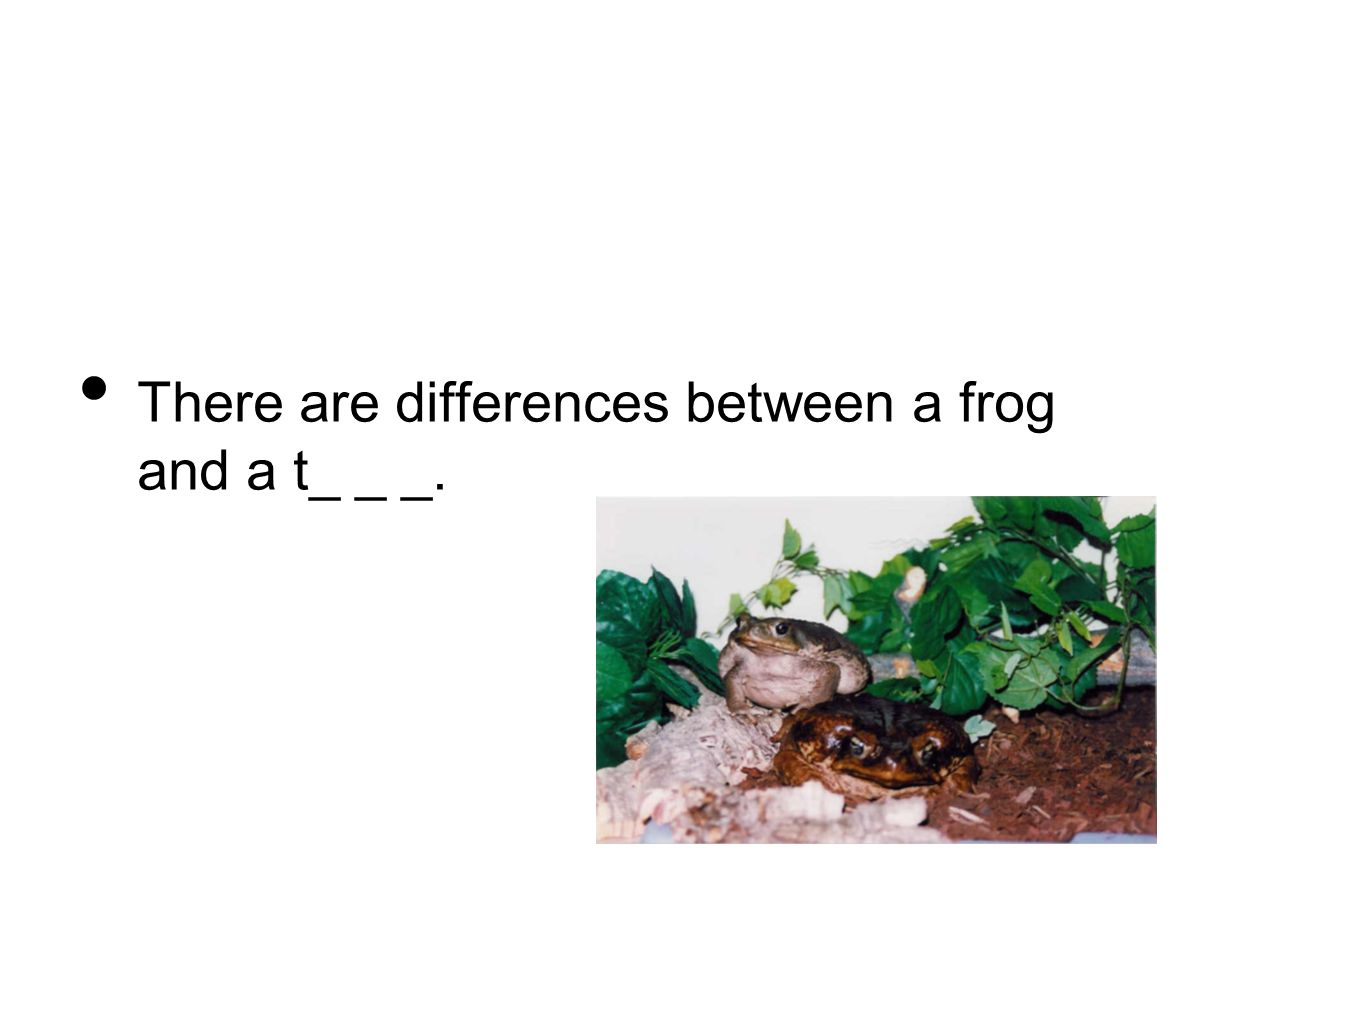 There are differences between a frog and a t_ _ _.